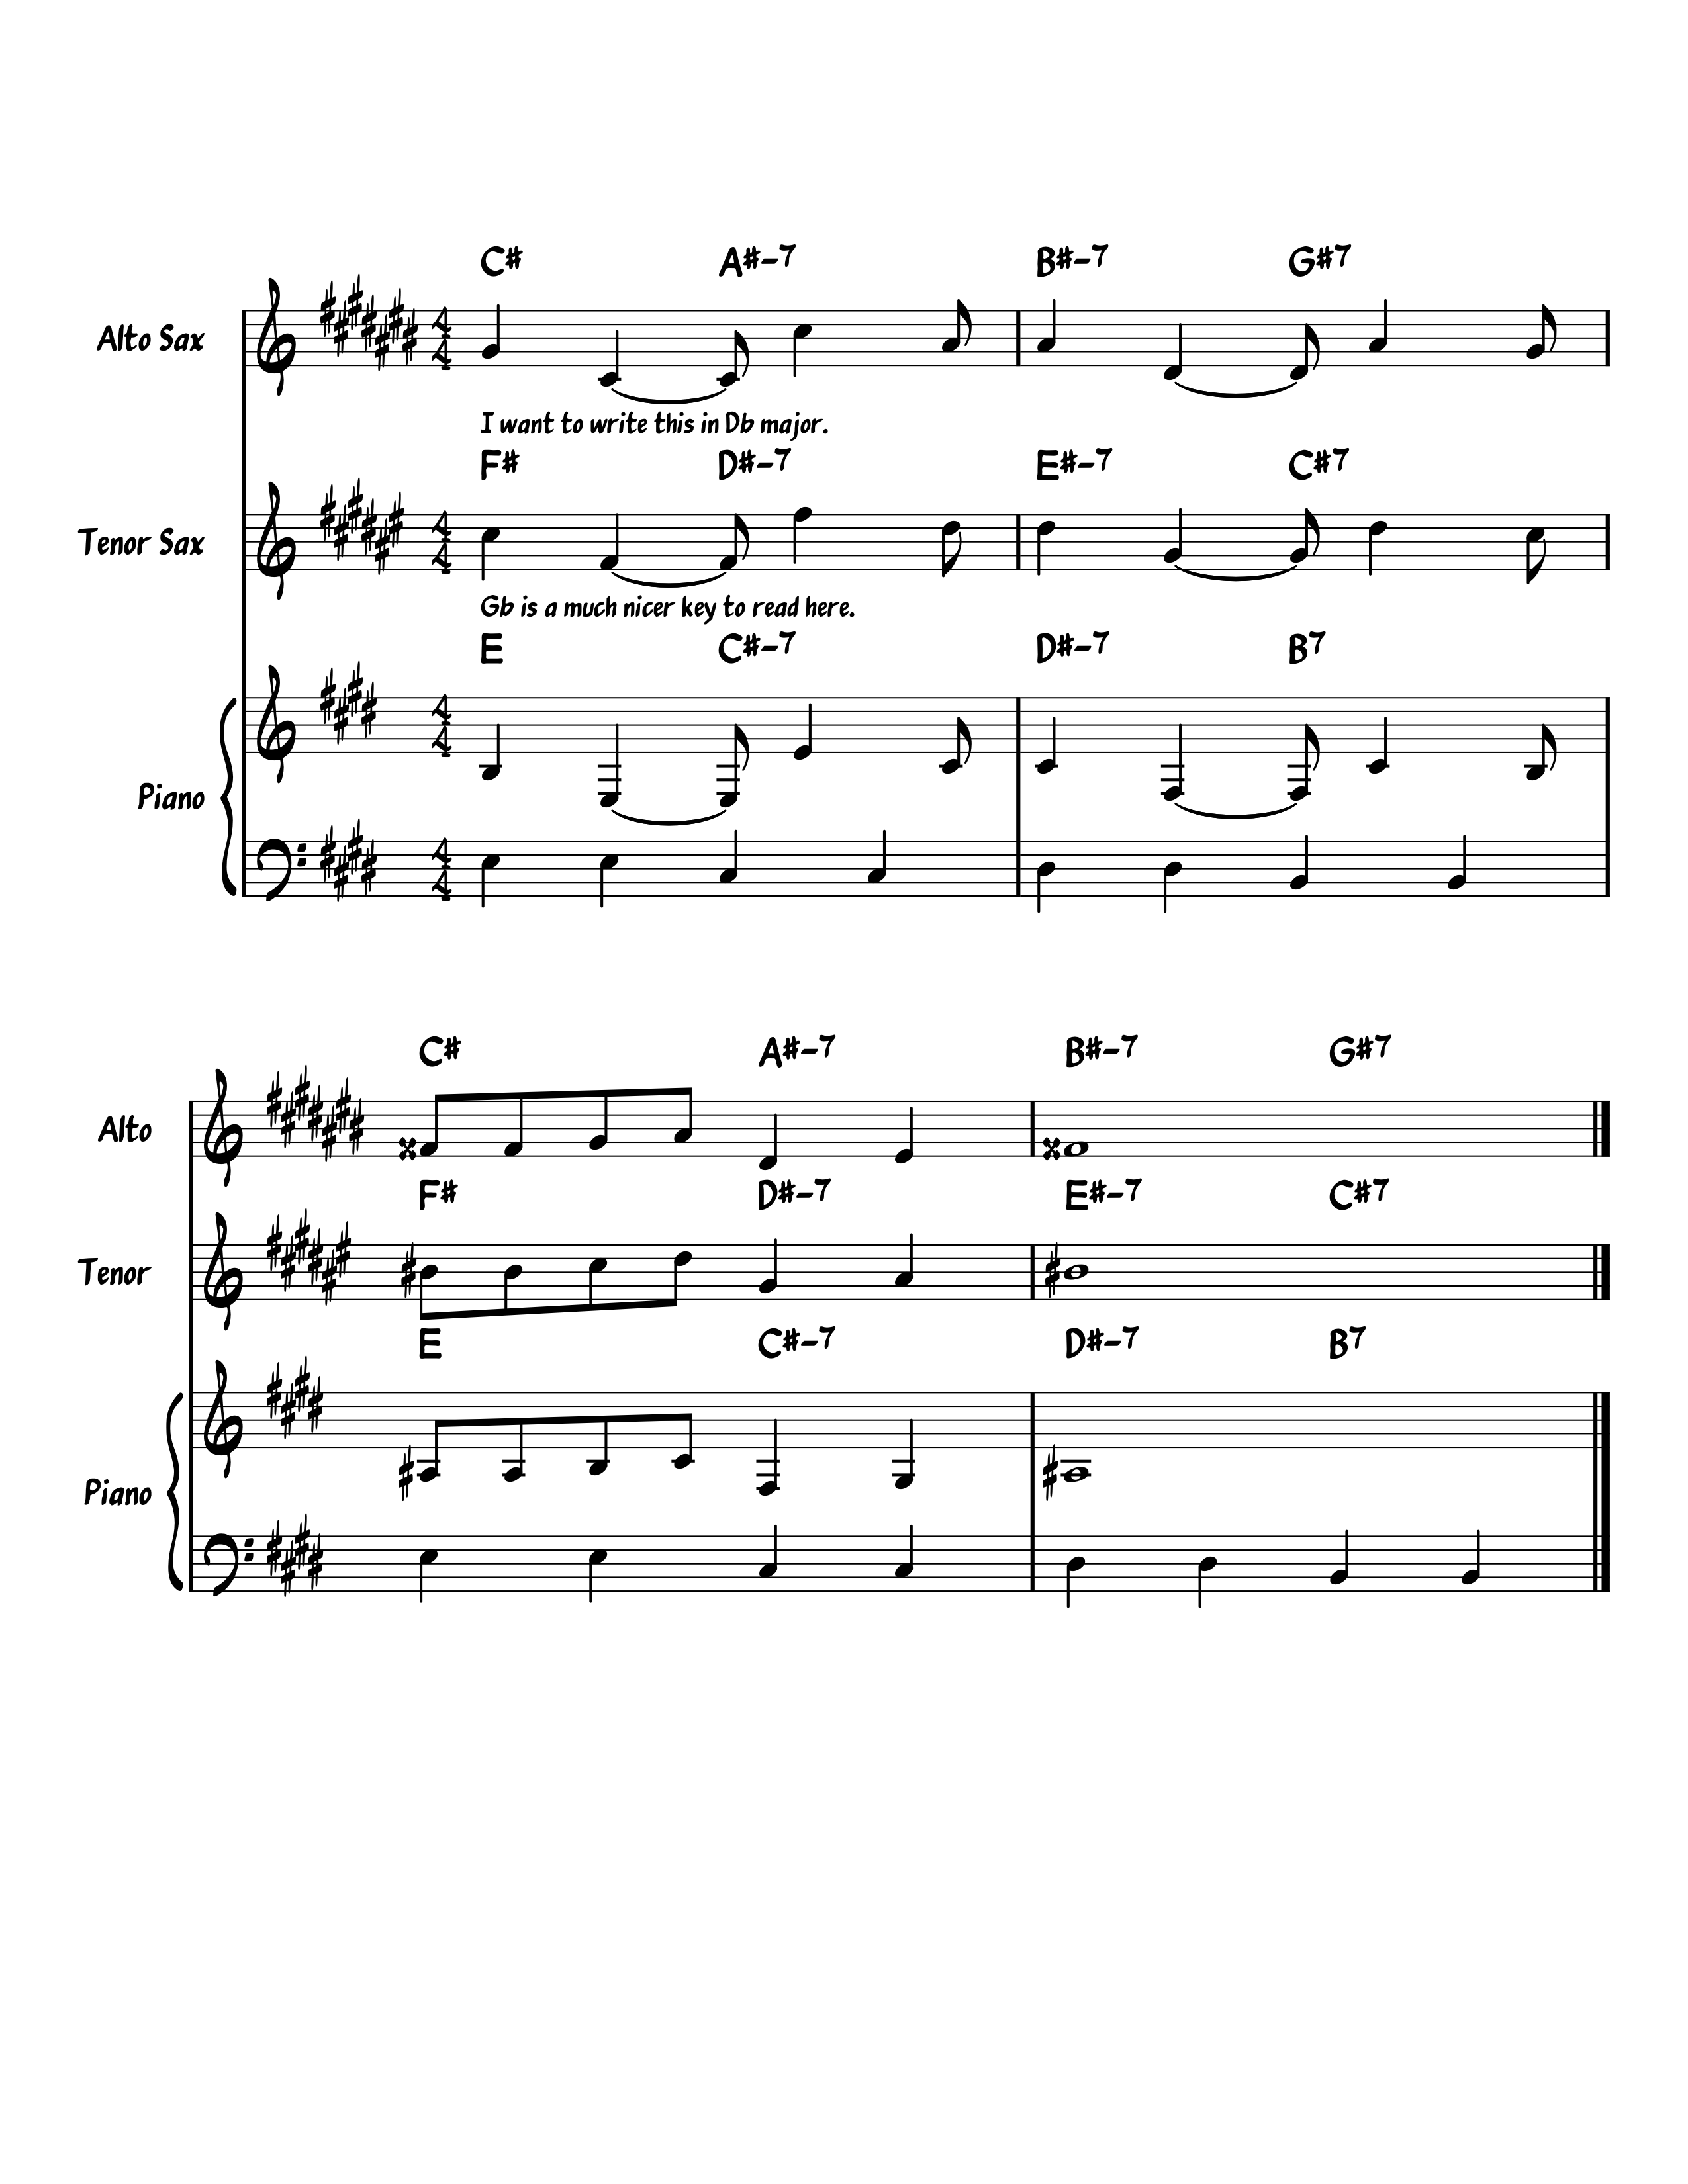 Ability to switch to enharmonic key signature for